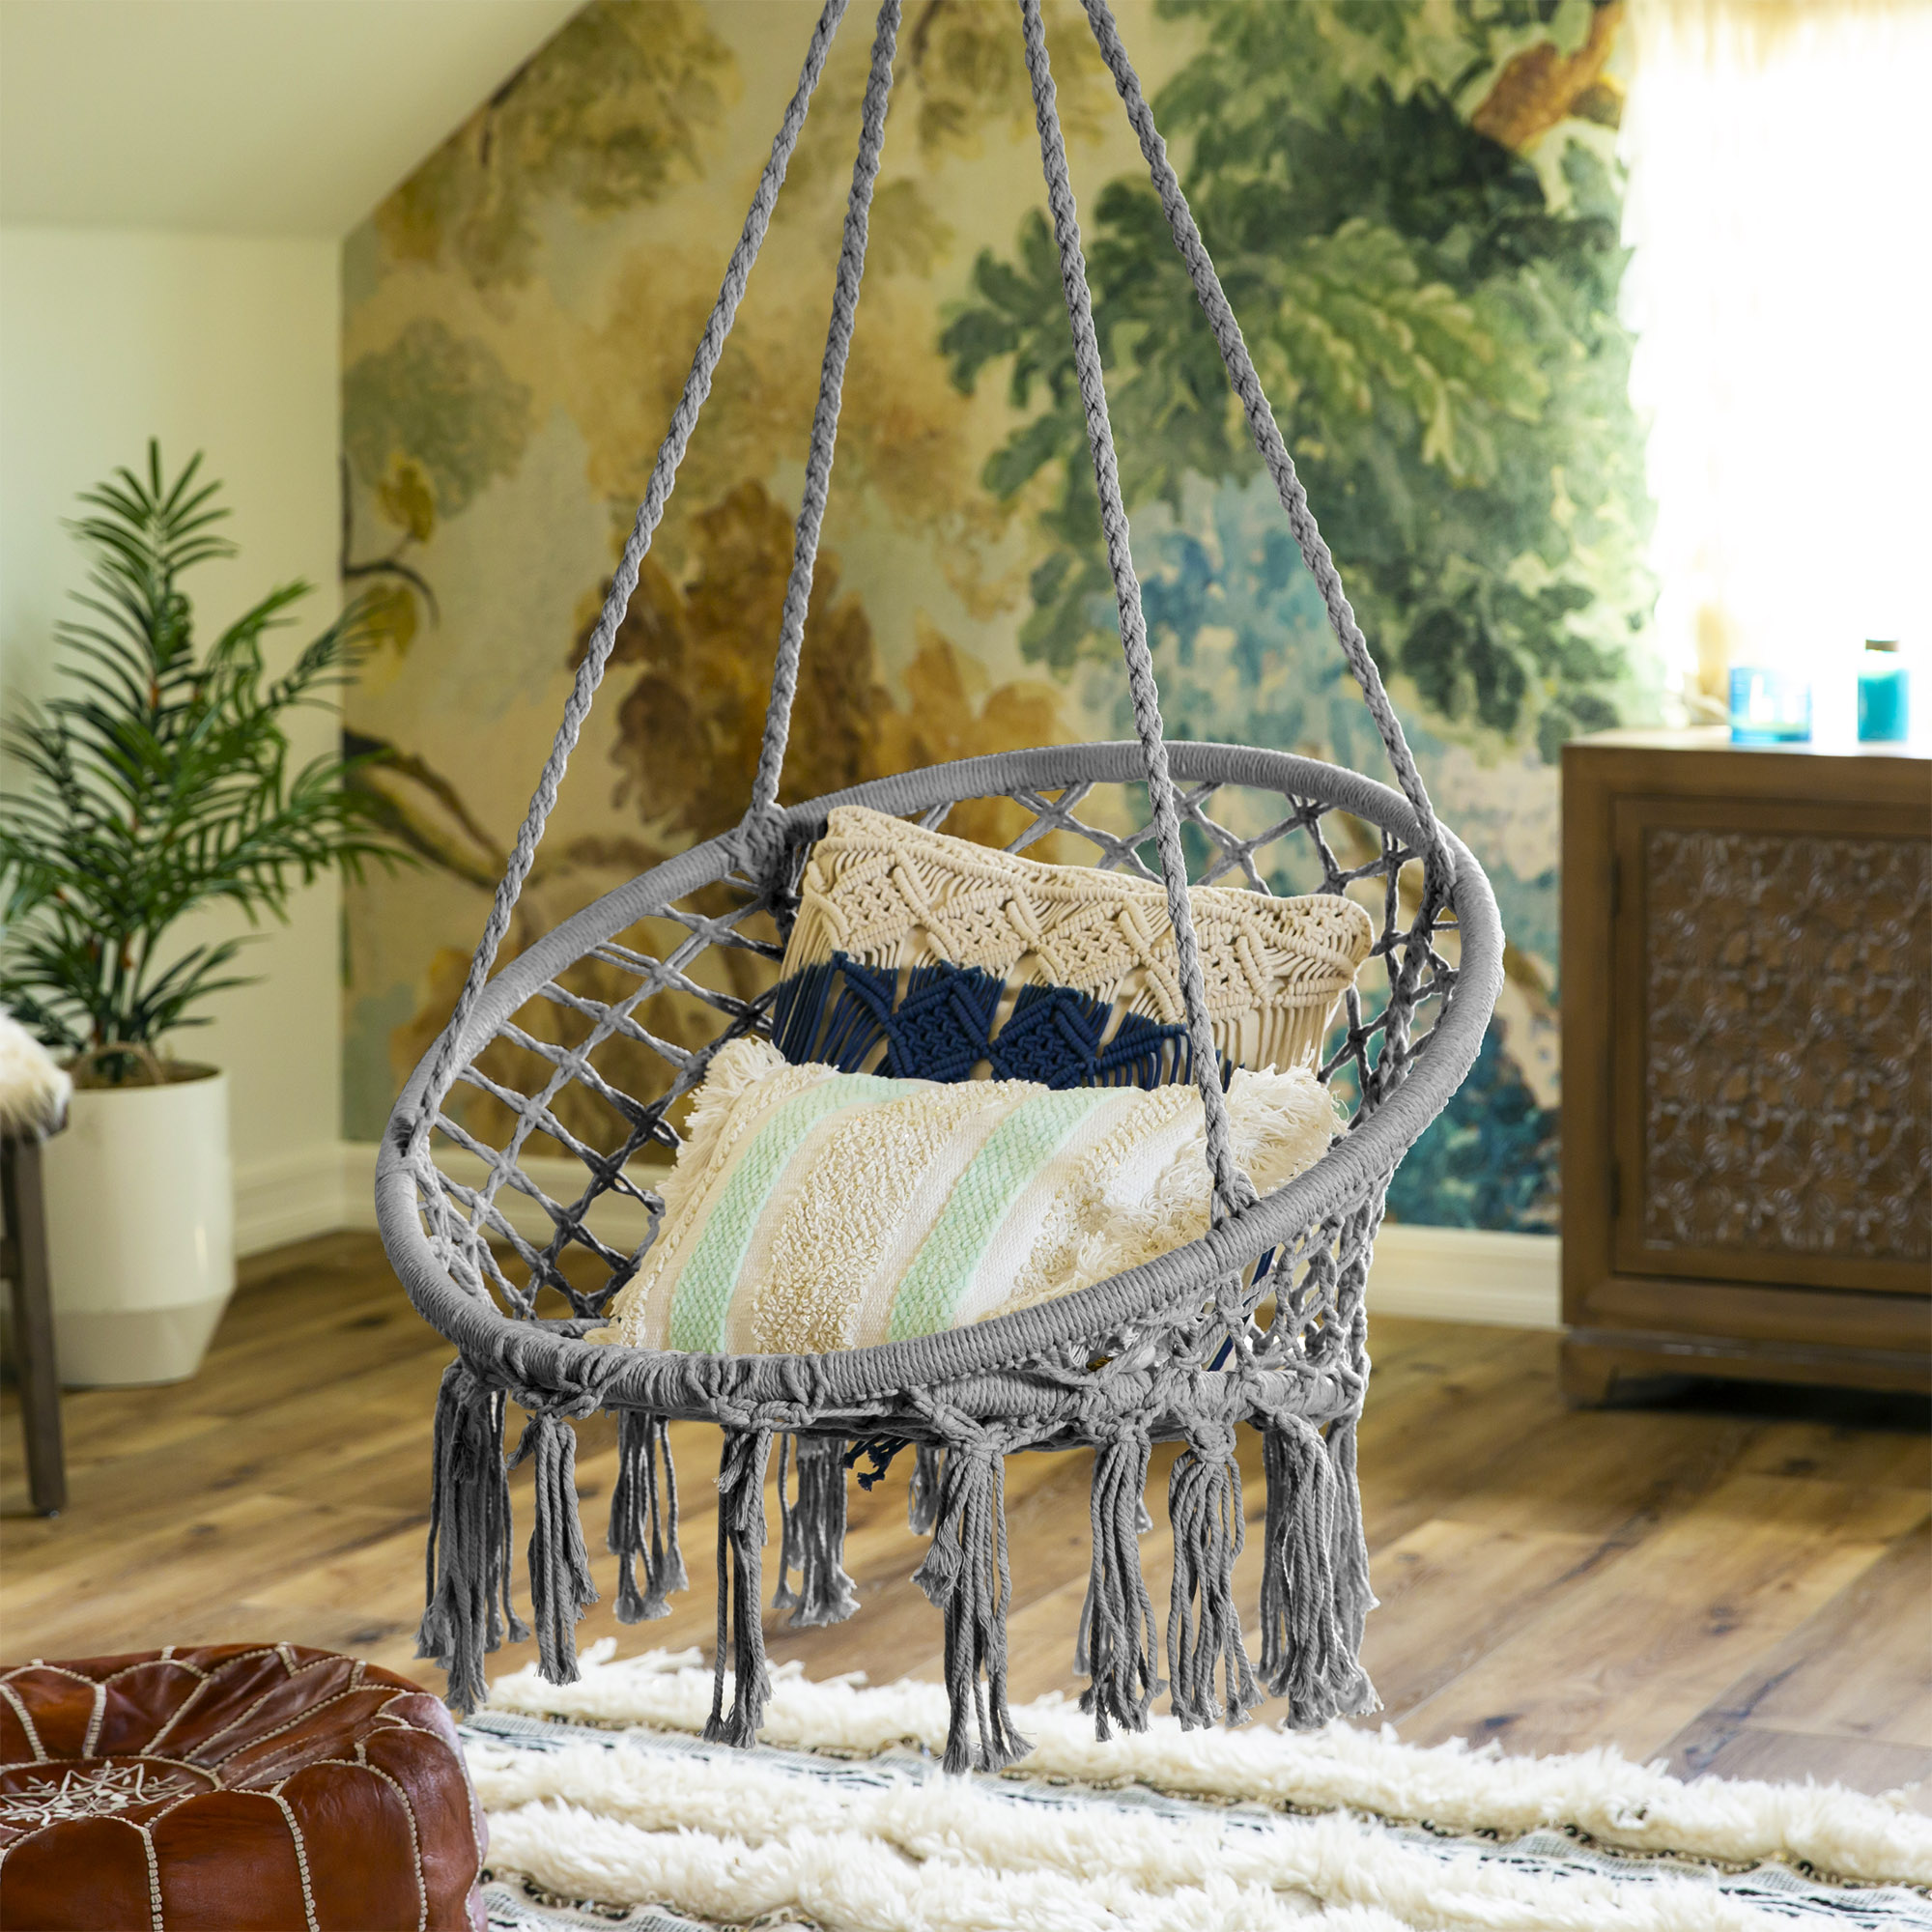 BCP-Handwoven-Cotton-Macrame-Hammock-Hanging-Chair-Swing-w-Backrest thumbnail 23